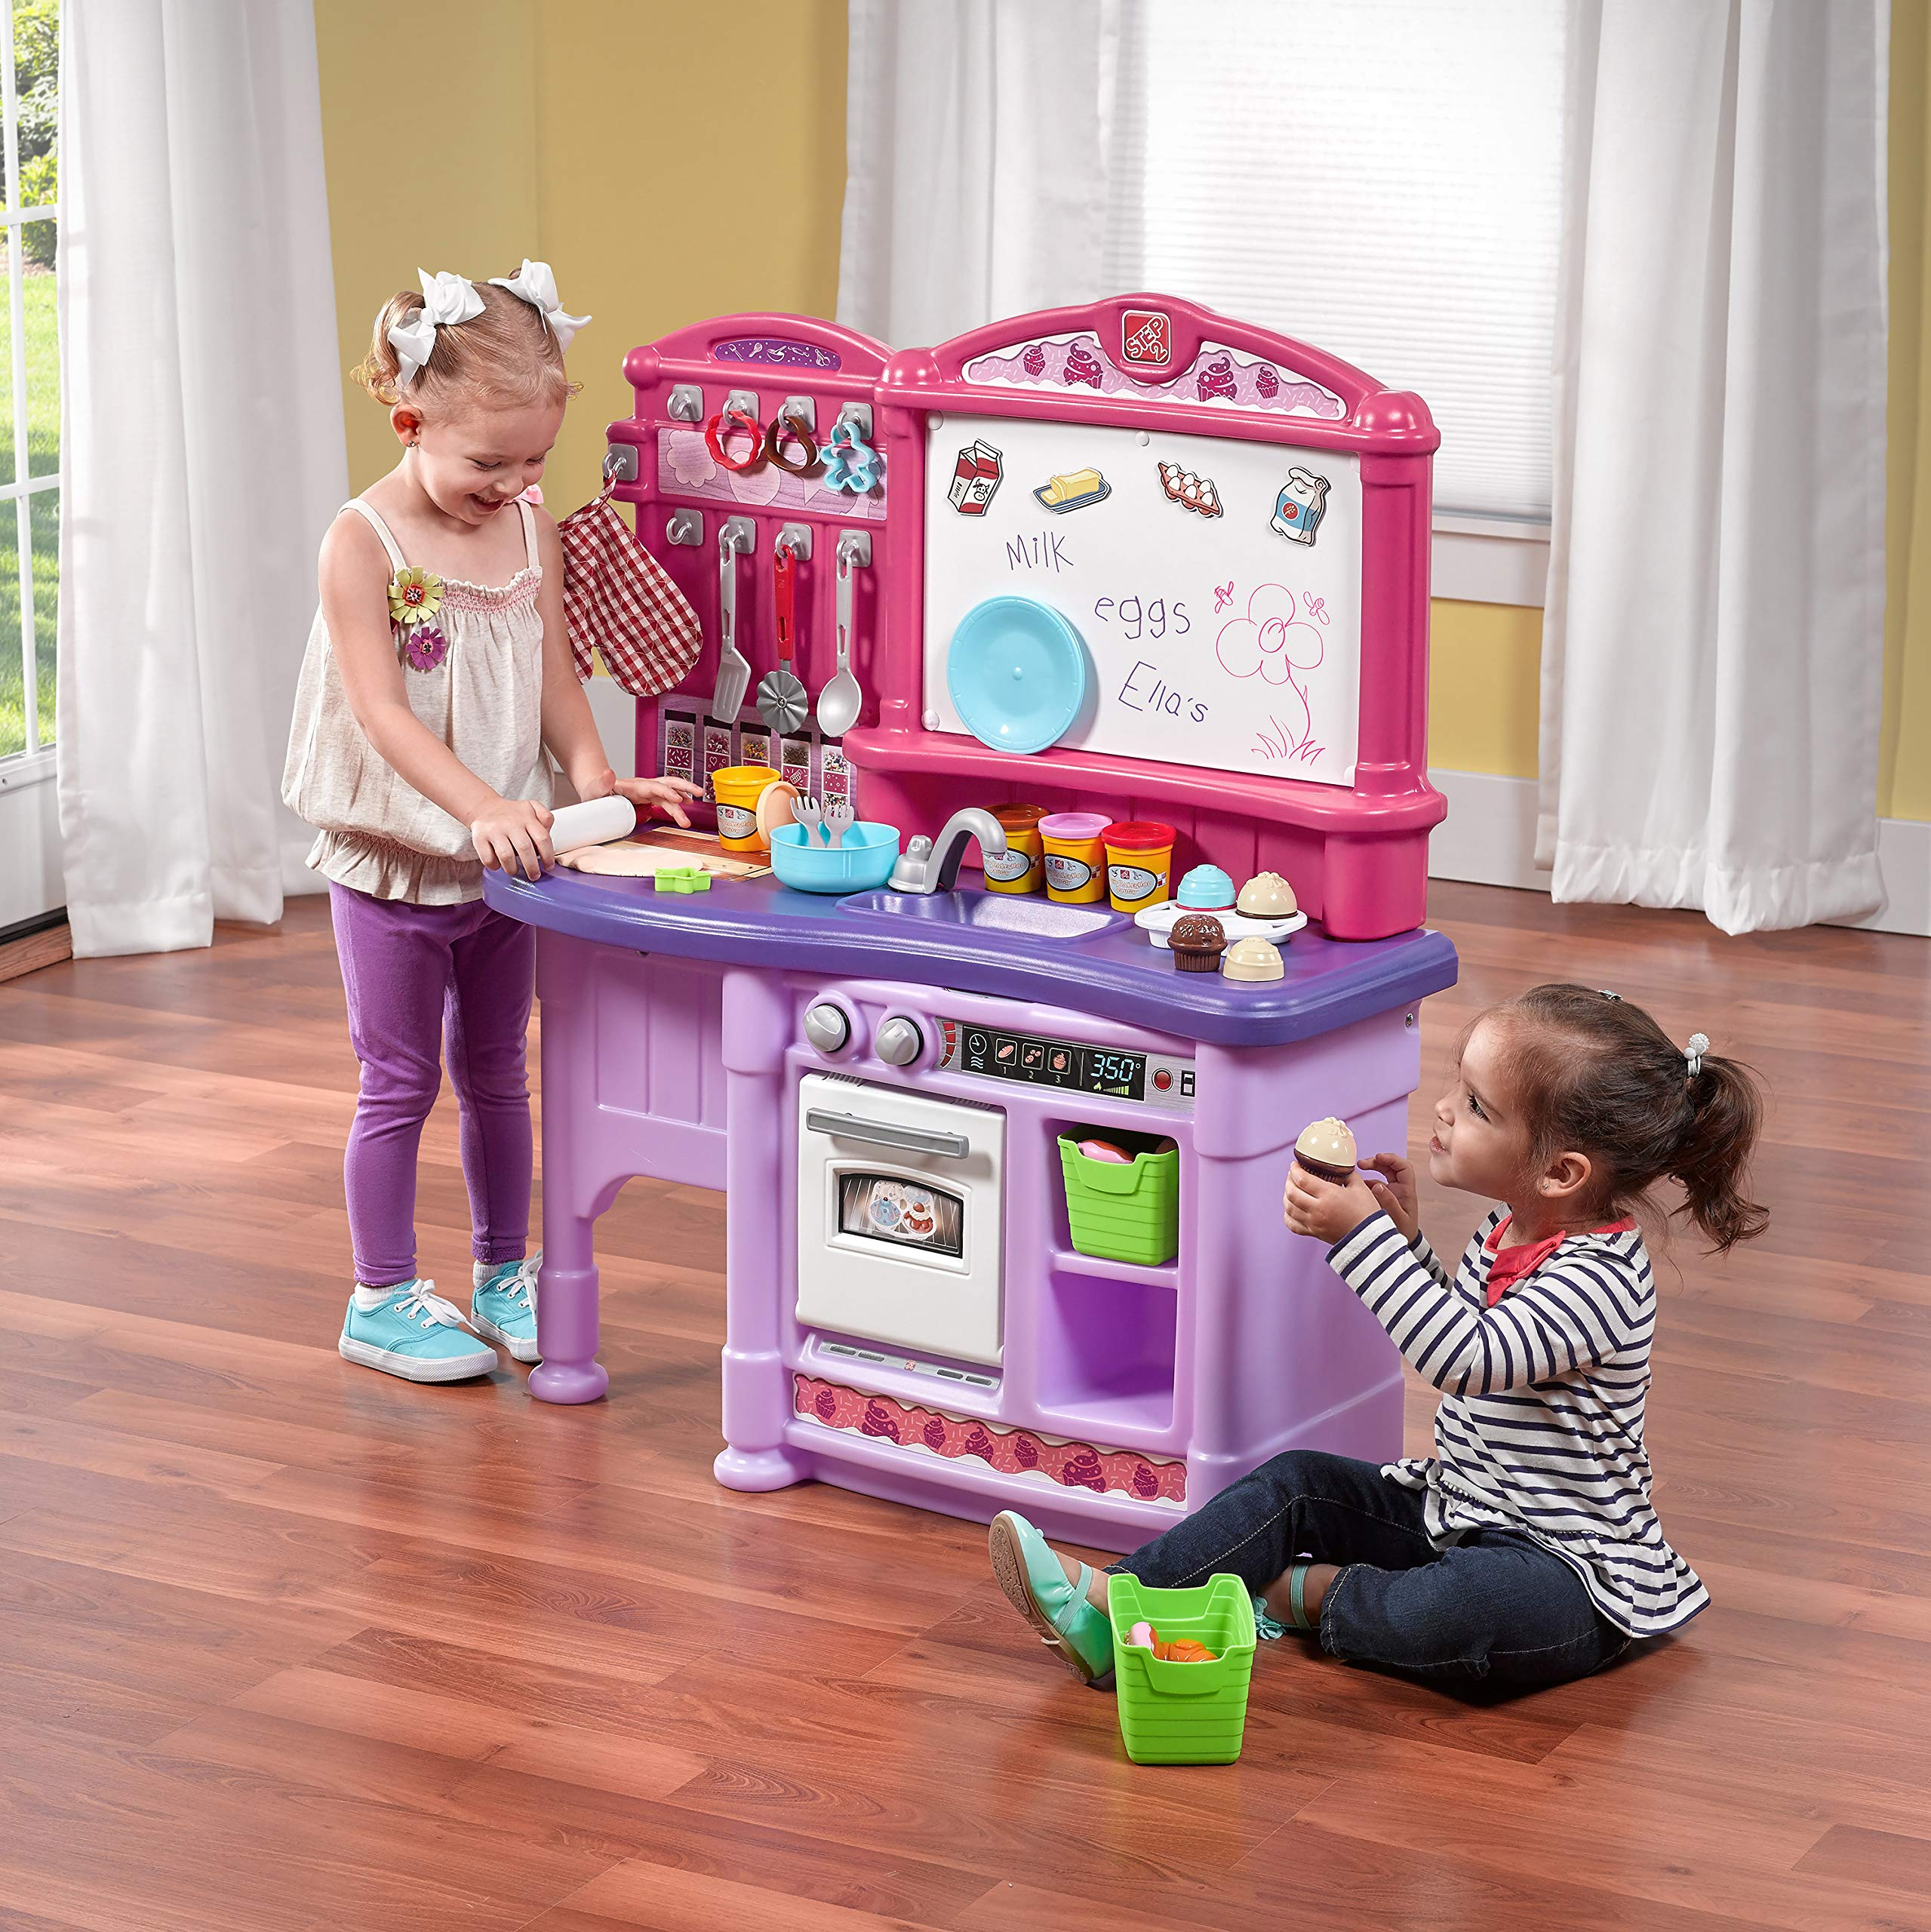 Step2 Create & Bake Play Kitchen with Toy Baking Set, Pink & Purple, 40'' H x 34.25'' W x 12'' D by Step2 (Image #2)